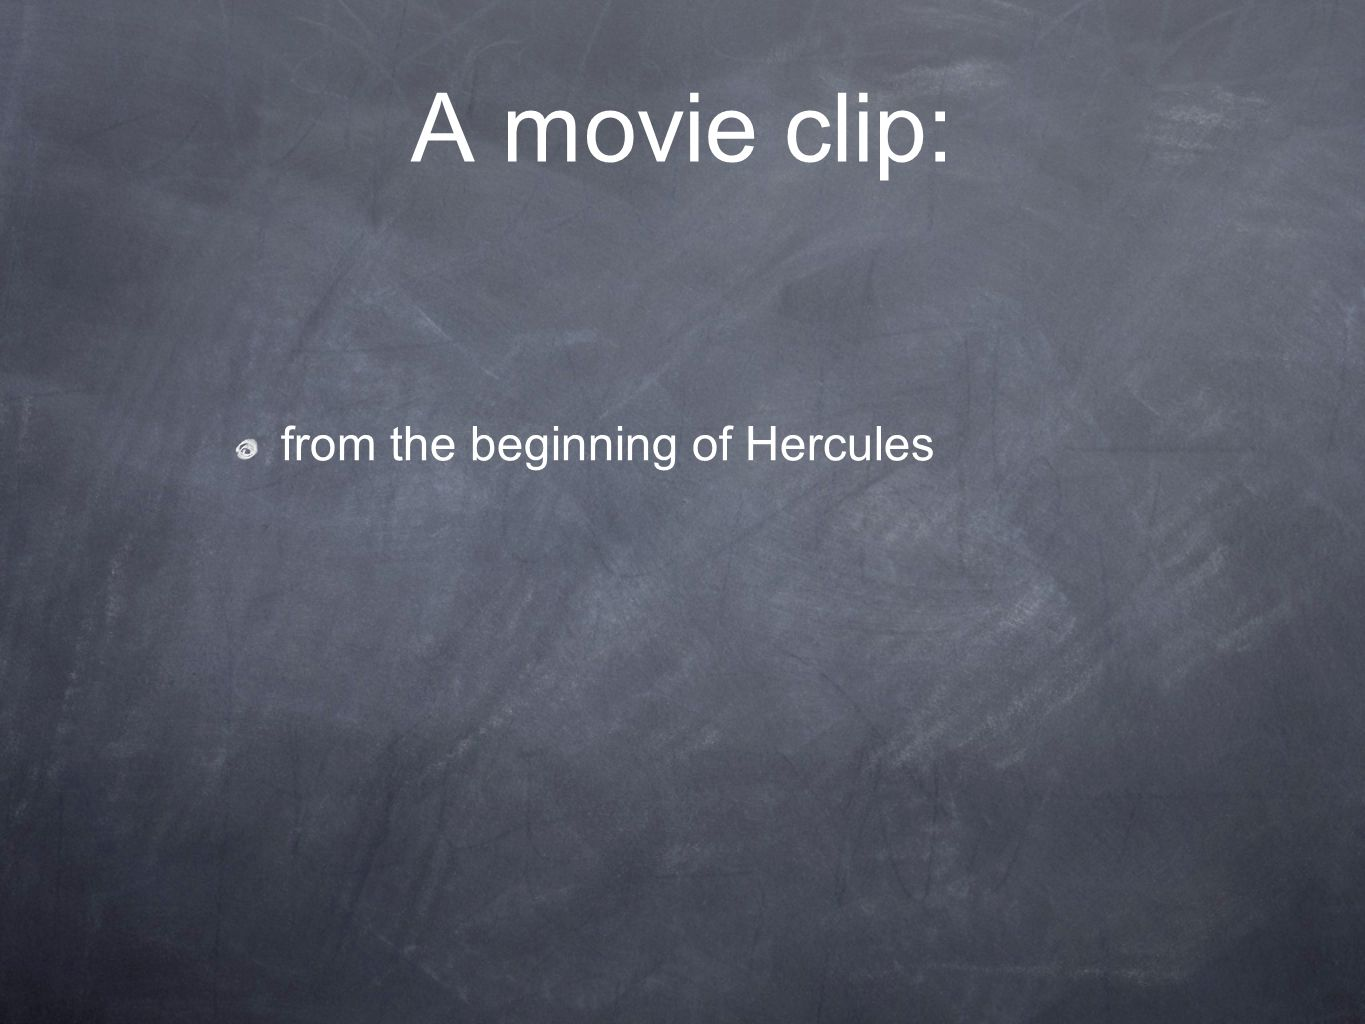 A movie clip: from the beginning of Hercules